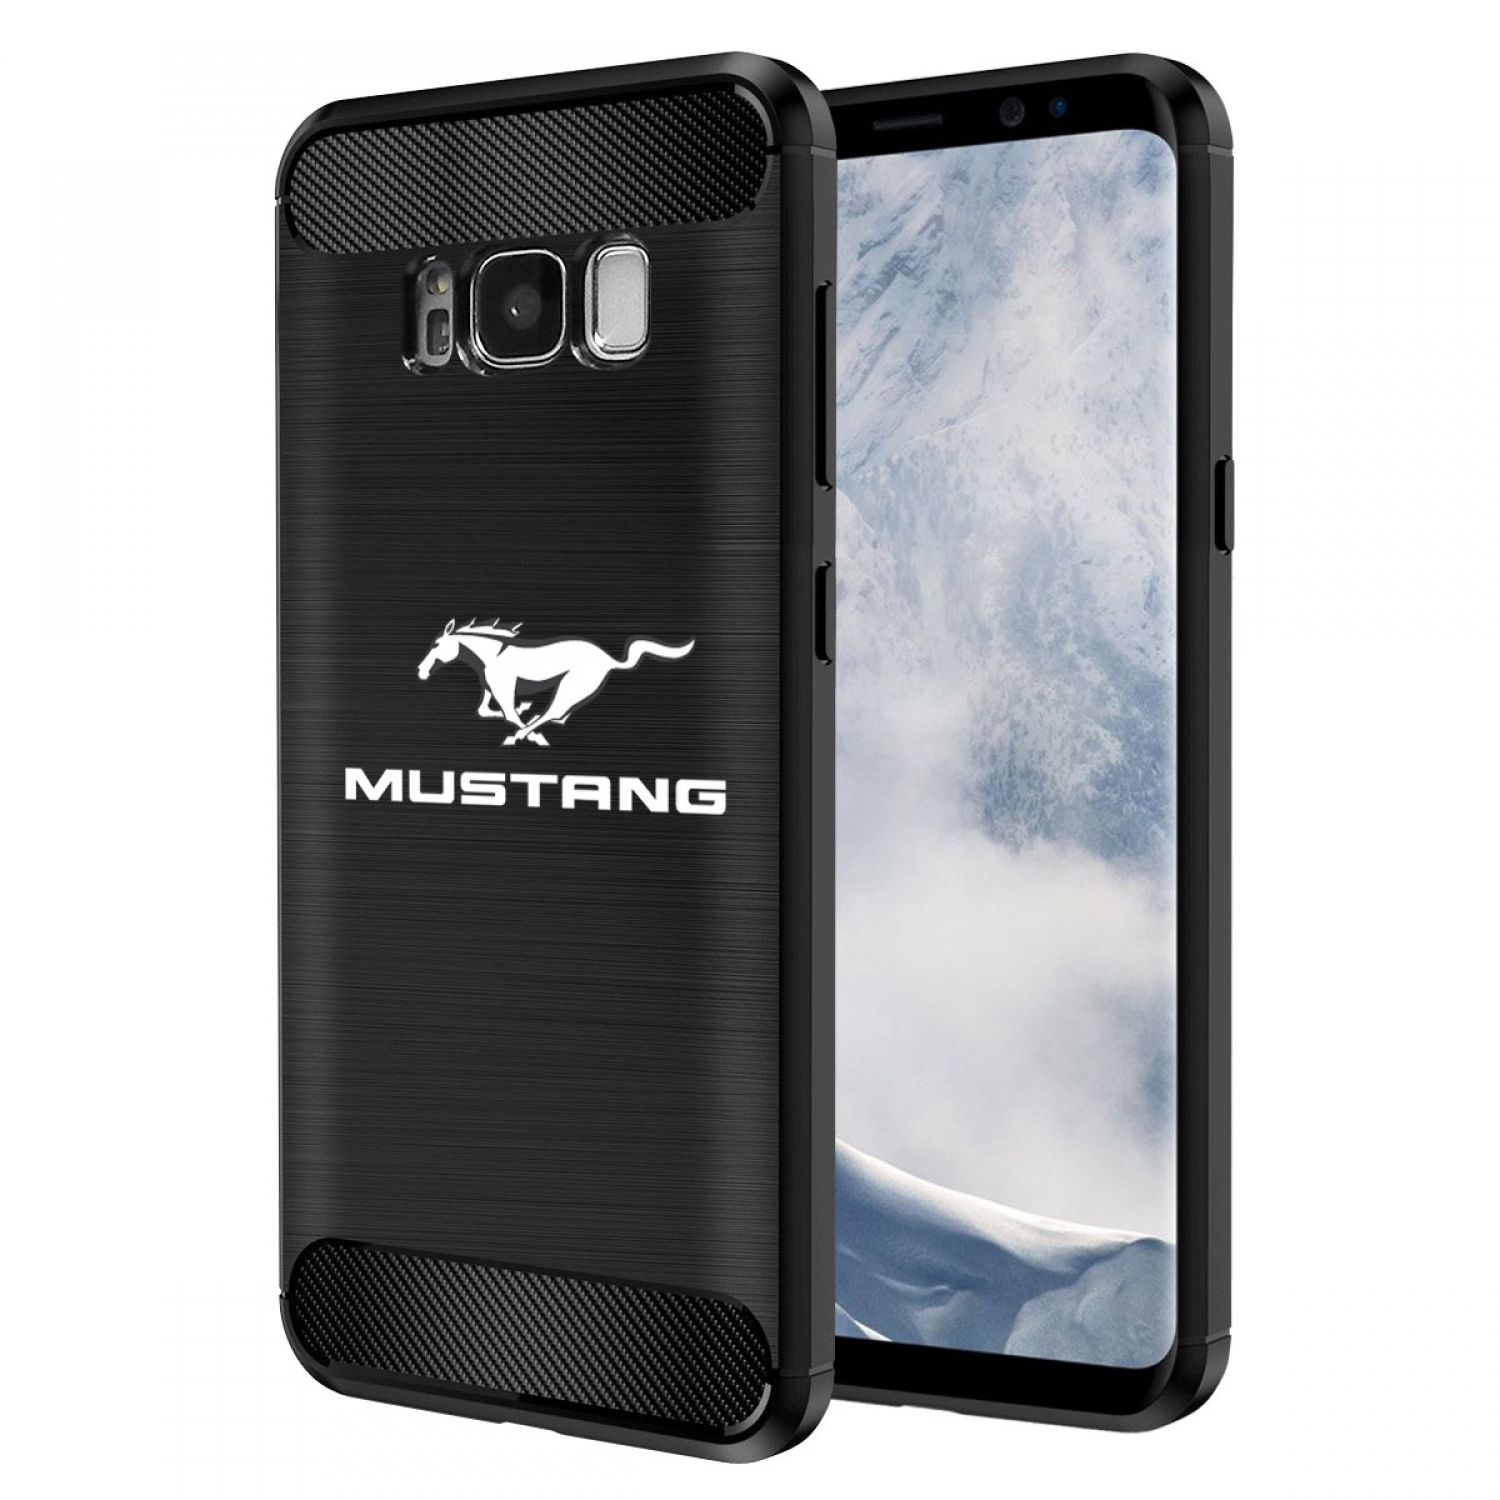 Galaxy S8 Case, Ford Mustang TPU Shockproof Black Carbon Fiber Textures Stripes Cell Phone Case